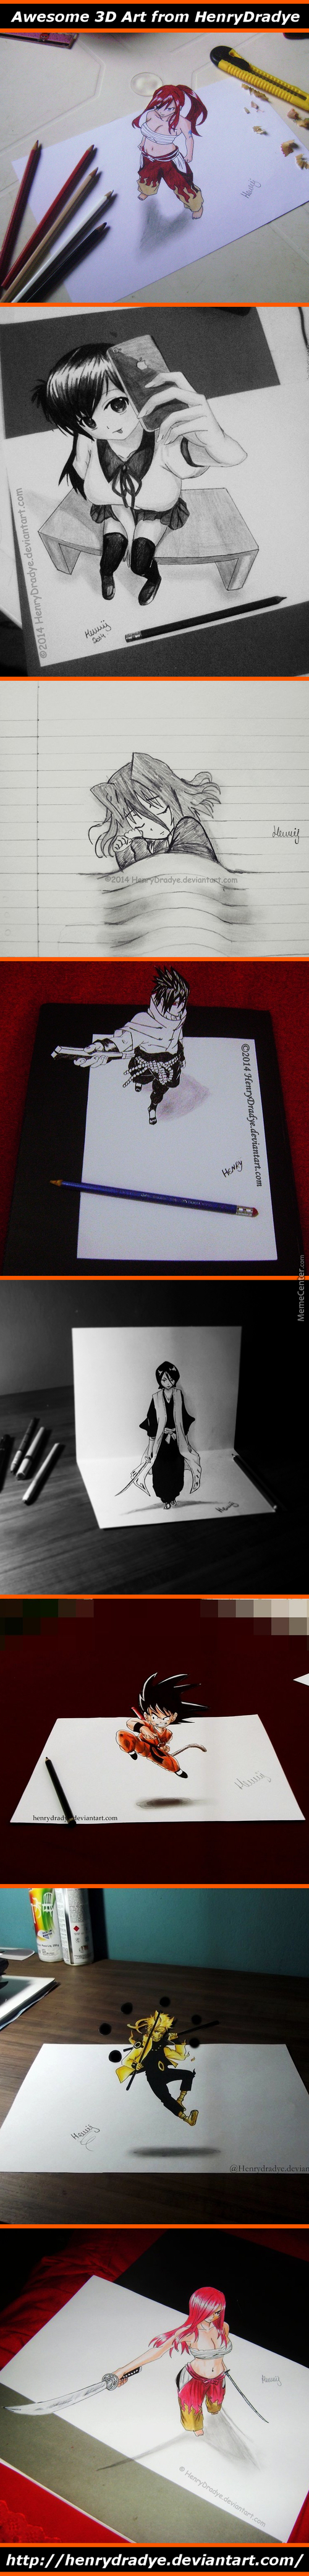 Awesome 3D Art Is Awesome!